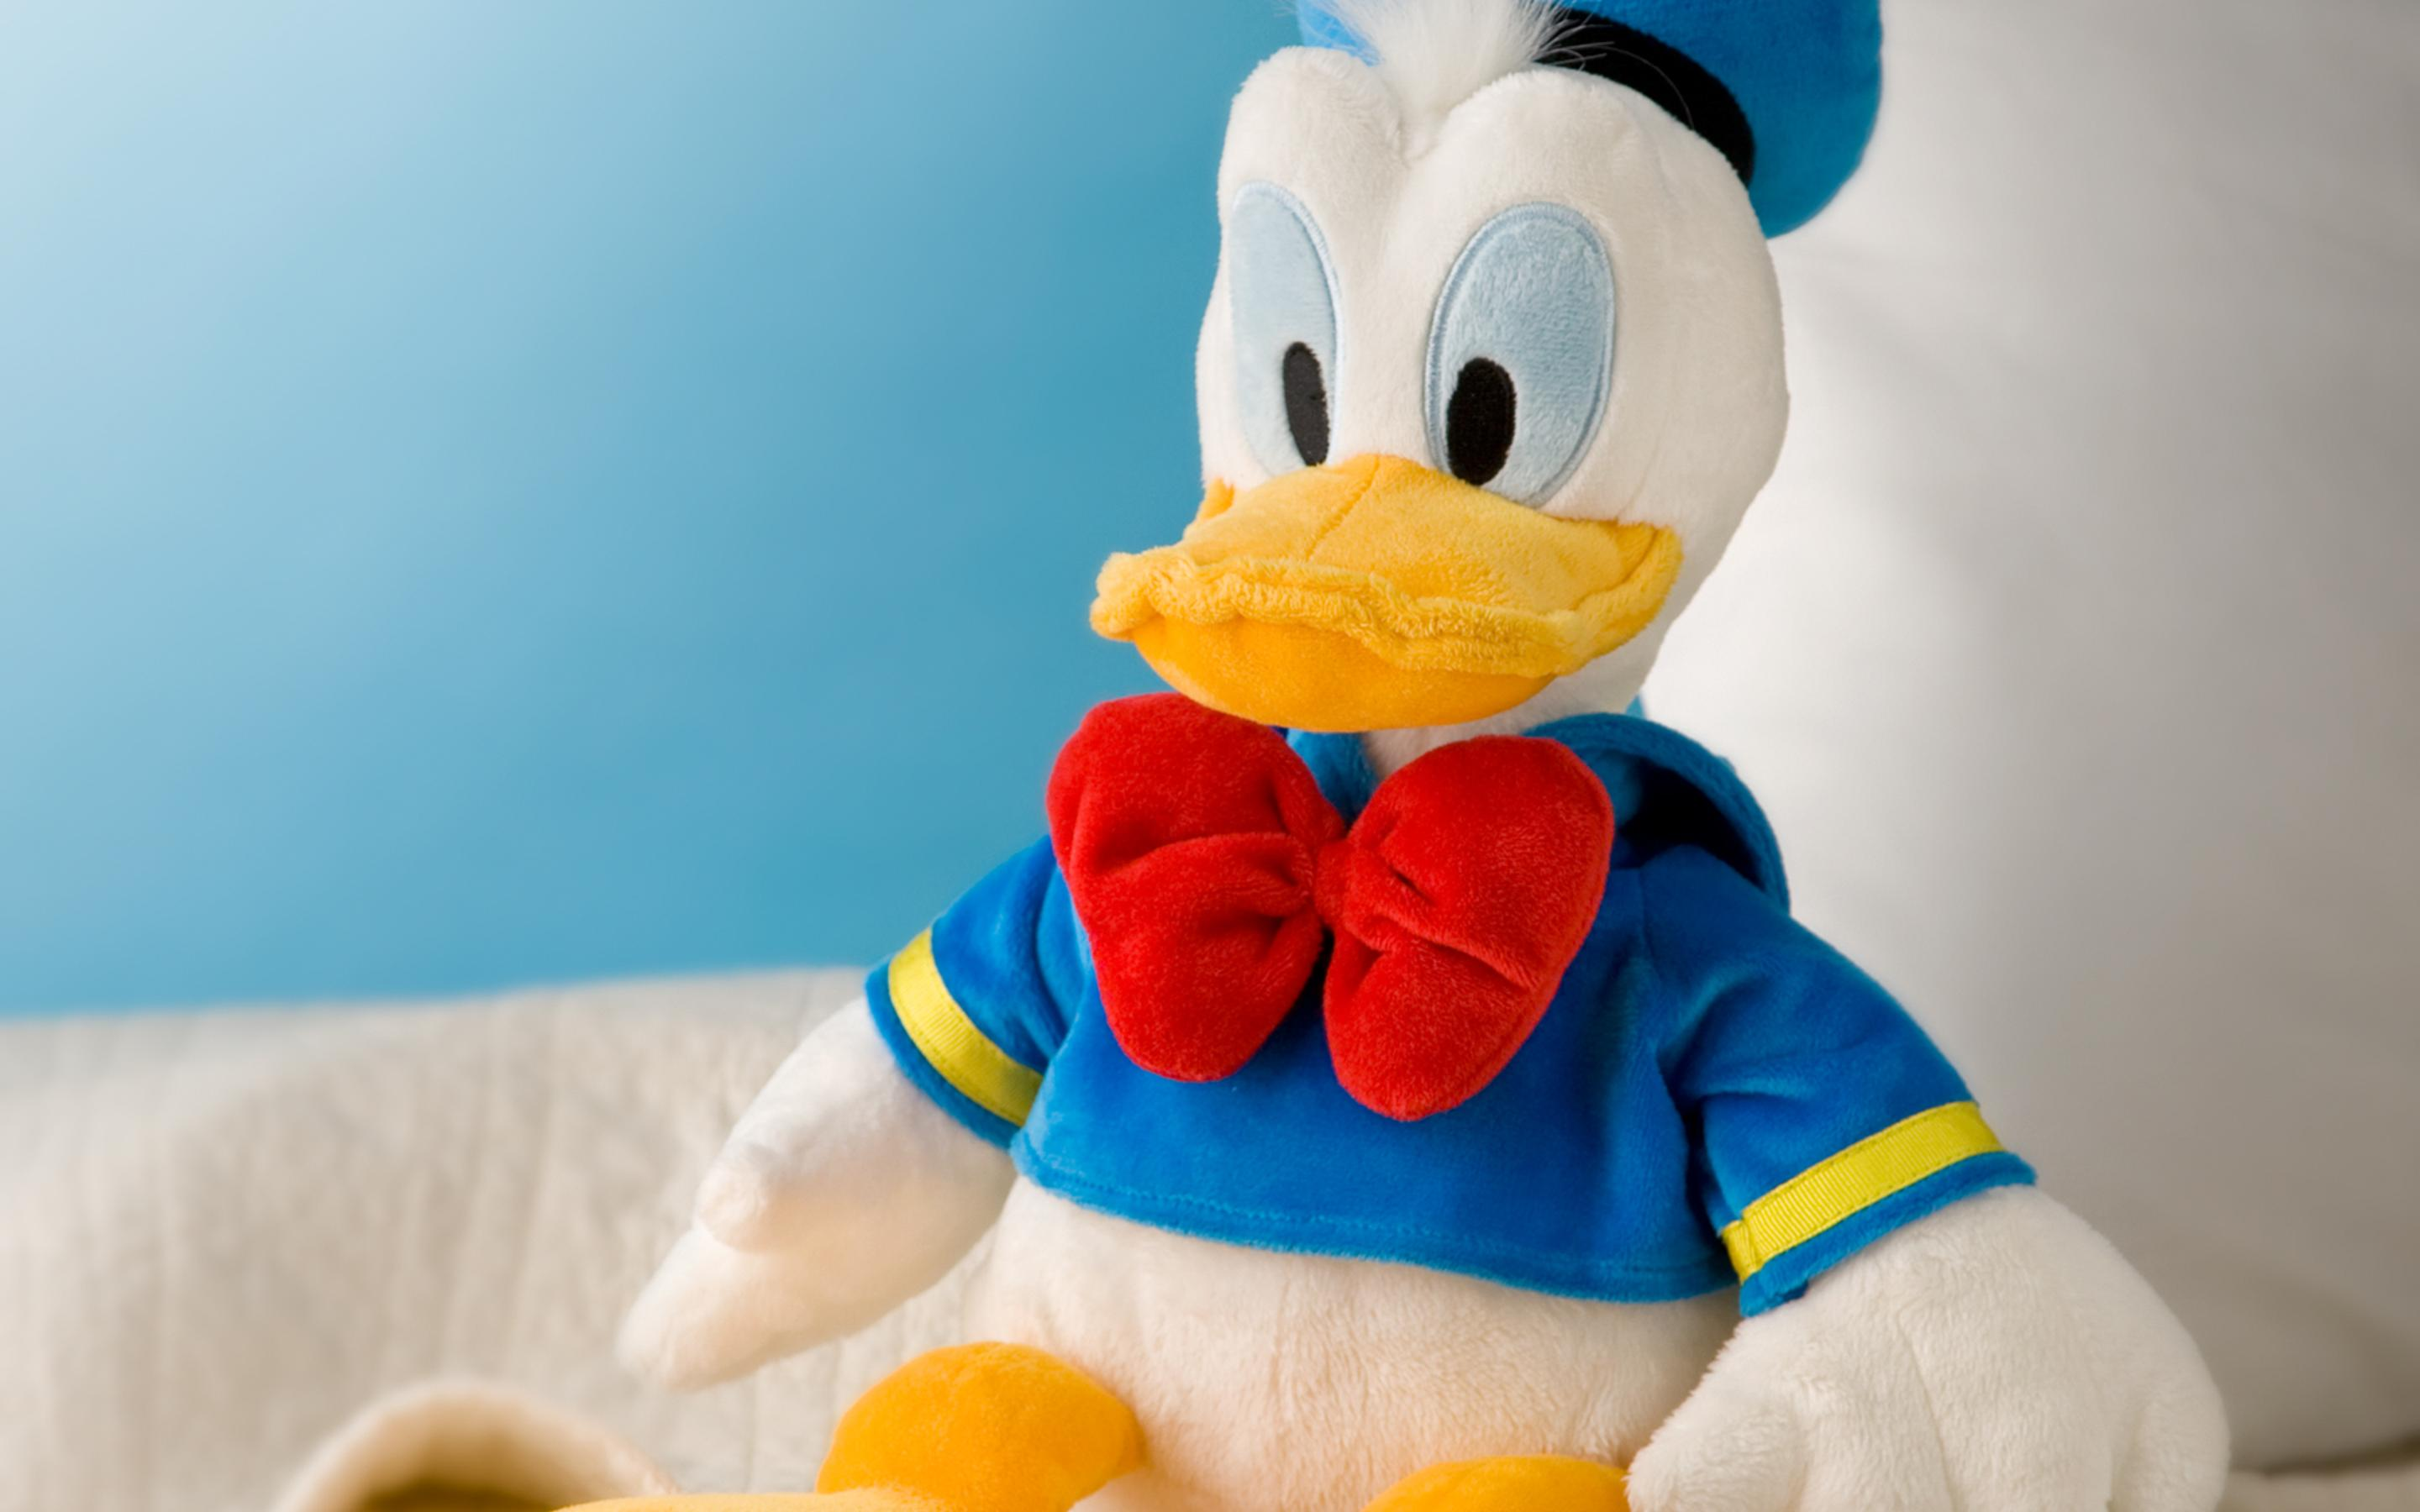 Donald Duck Plush Toy On The Sofa Wallpaper Download 2880x1800